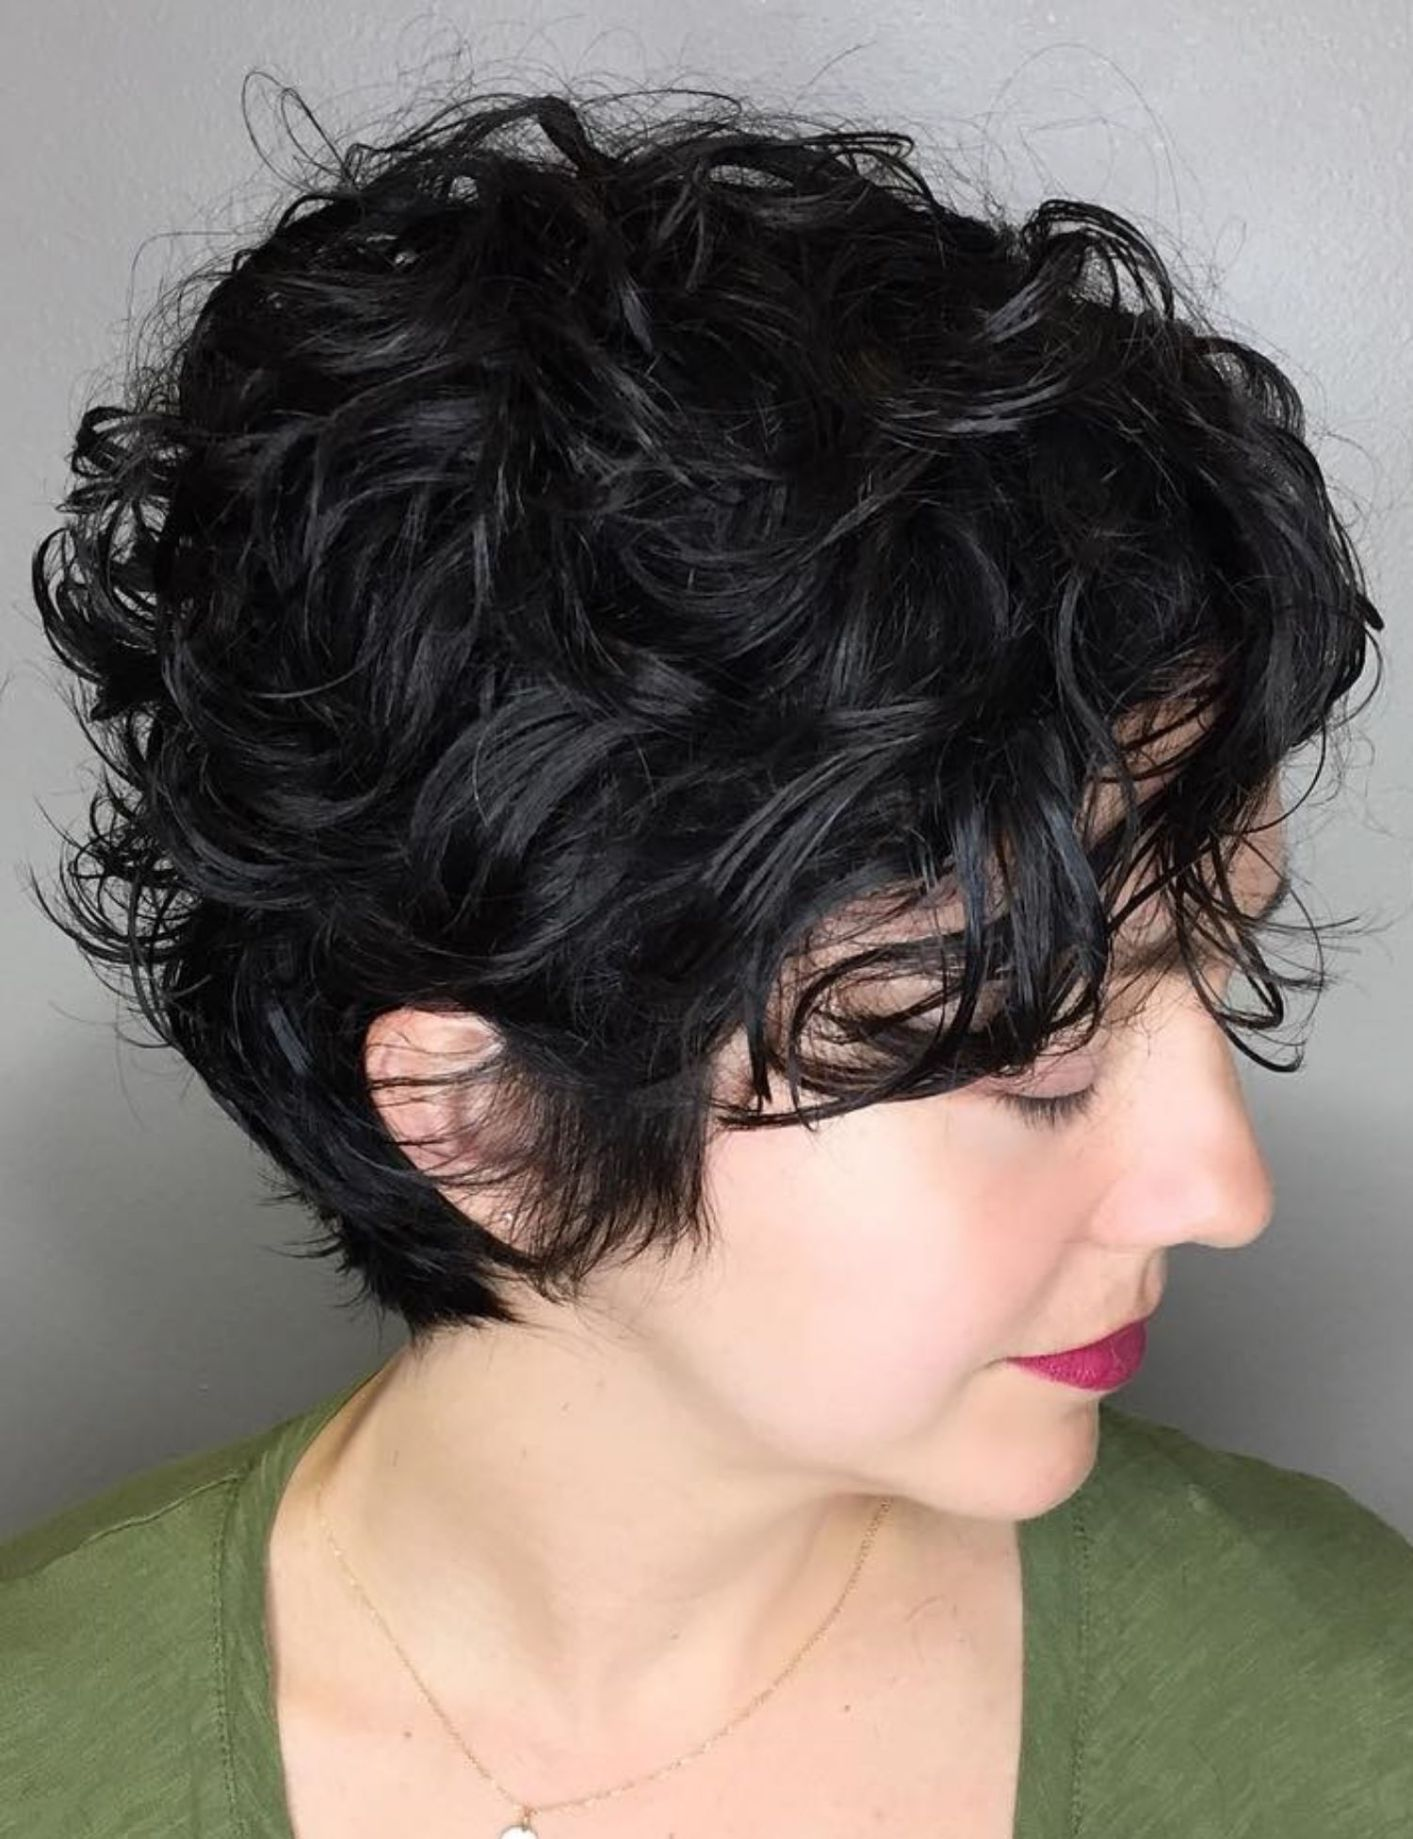 60 Most Delightful Short Wavy Hairstyles 60 Most Delightful Short Wavy Hairstyles new pics